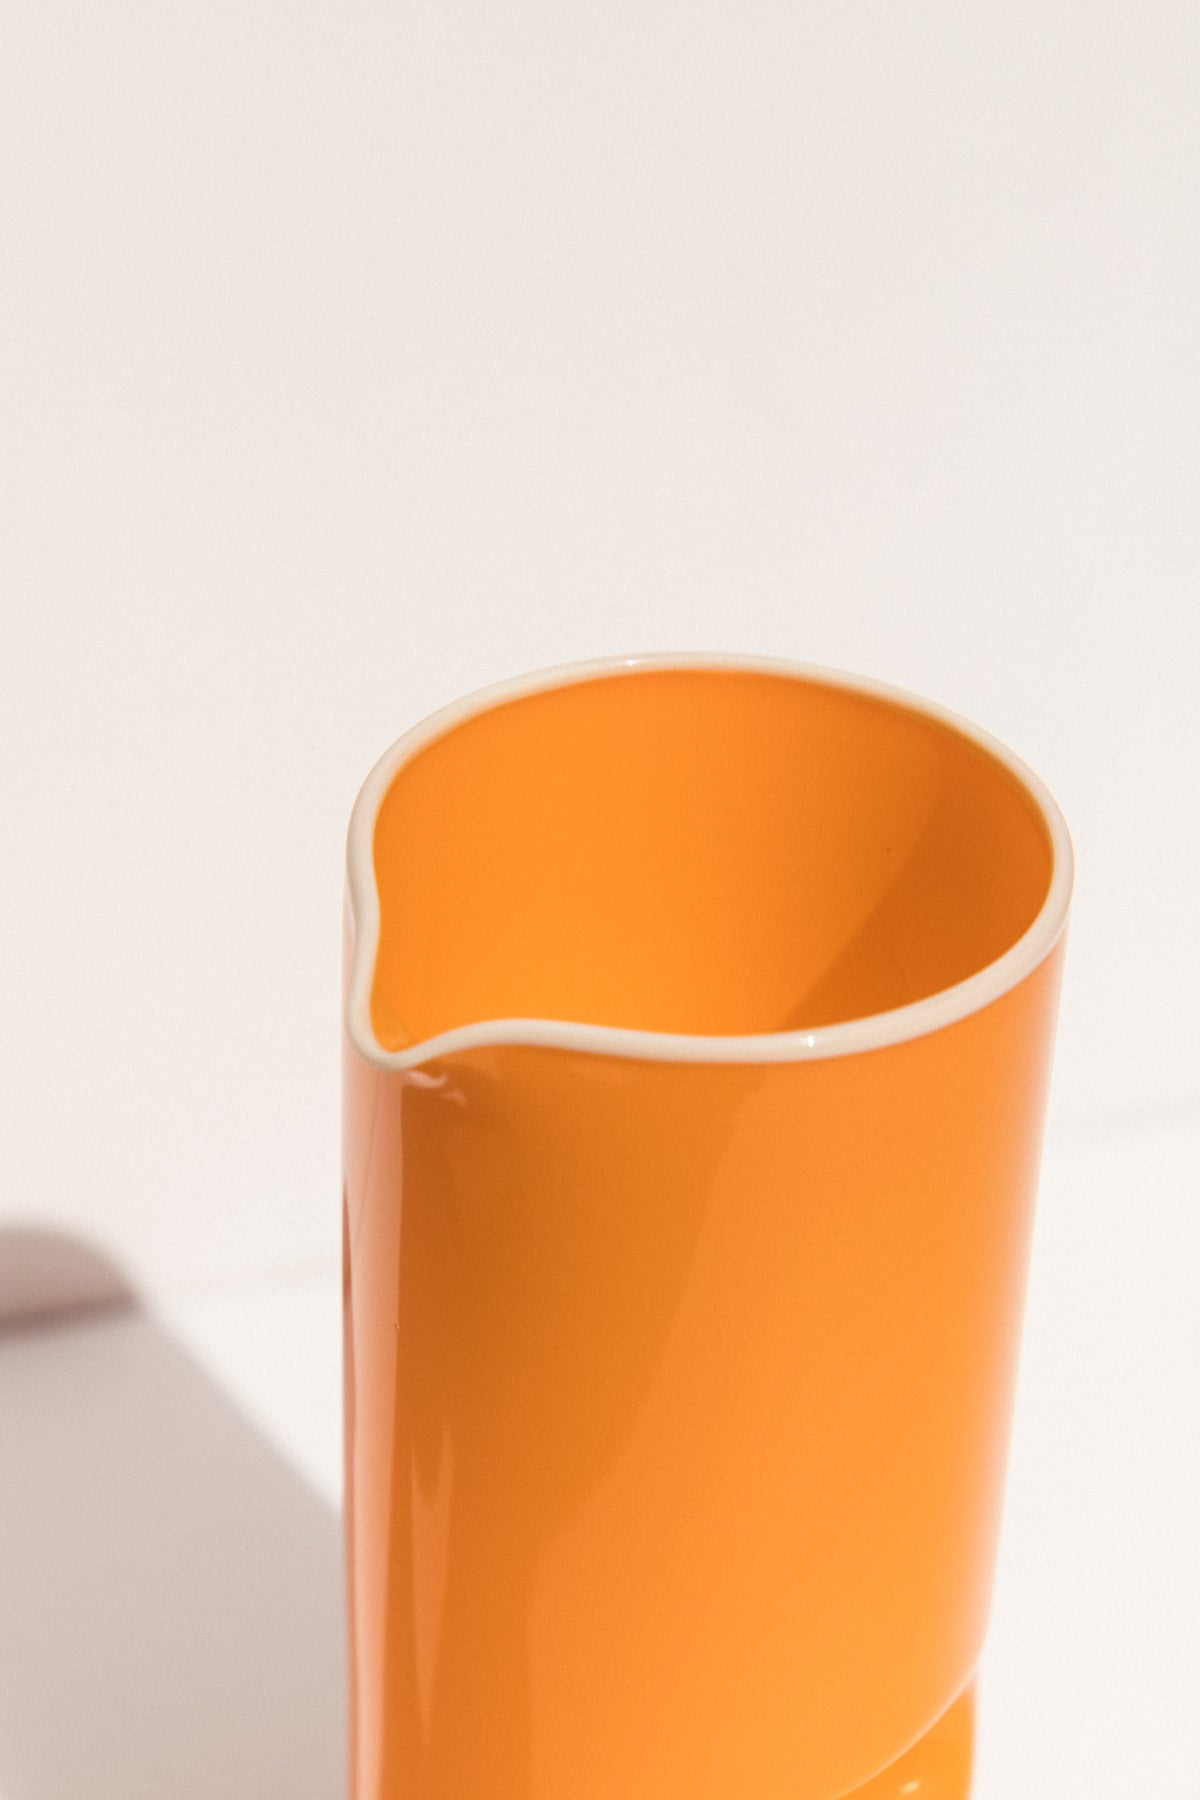 Drew Spangenberg Thumbprint glass jug in orange on makers' Mrkt Makers Market Melbourne